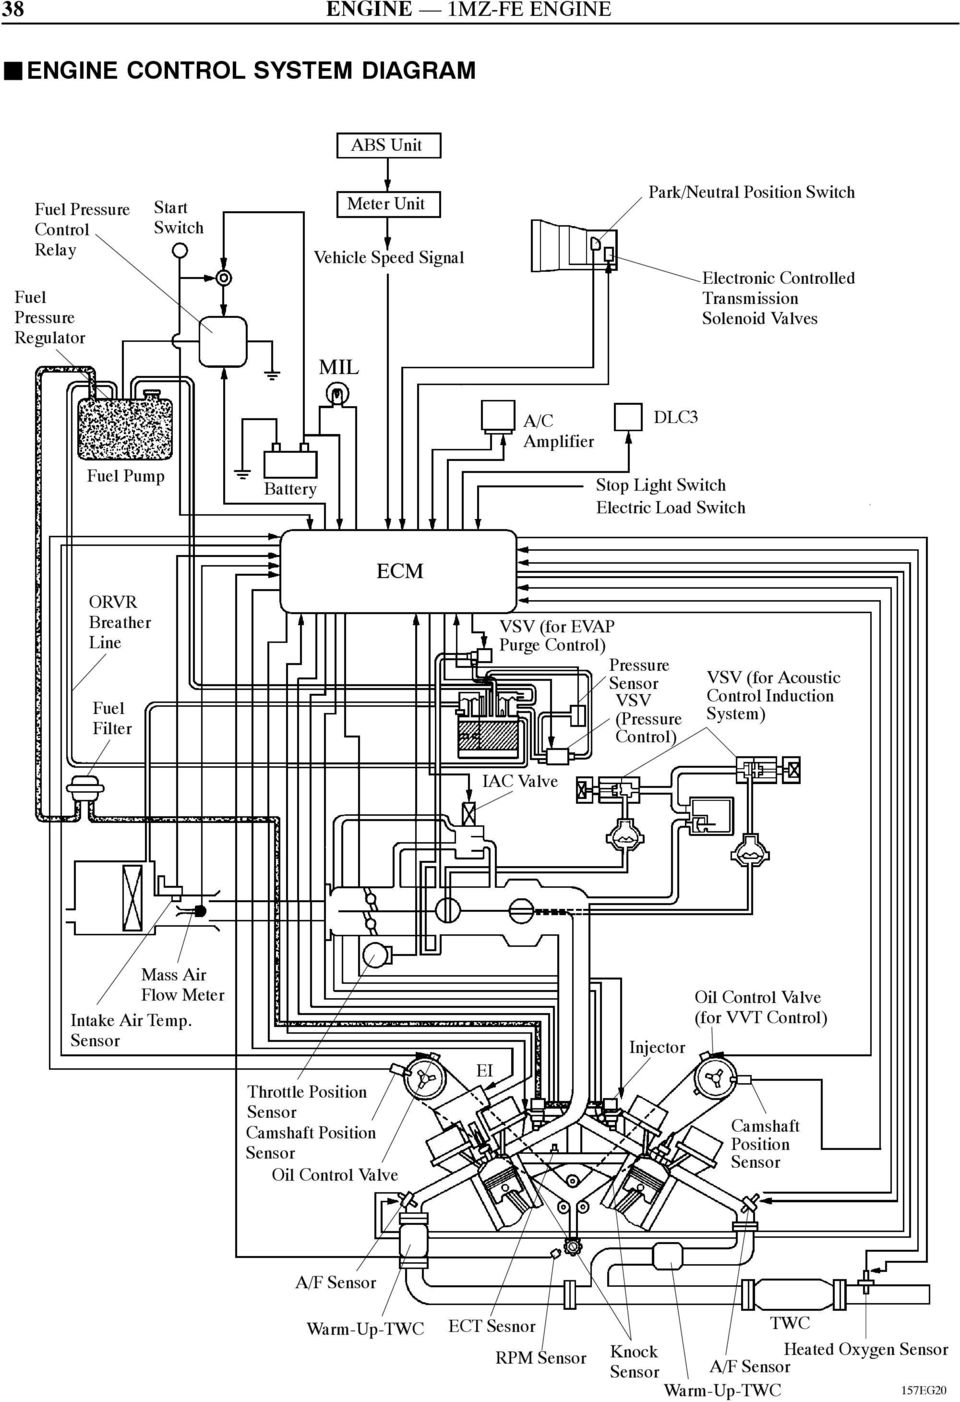 Engine Control System Pdf. For Evap Purge Control Pressure Vsv Acoustic. Wiring. 1nz Air Flow Wiring Diagram At Scoala.co